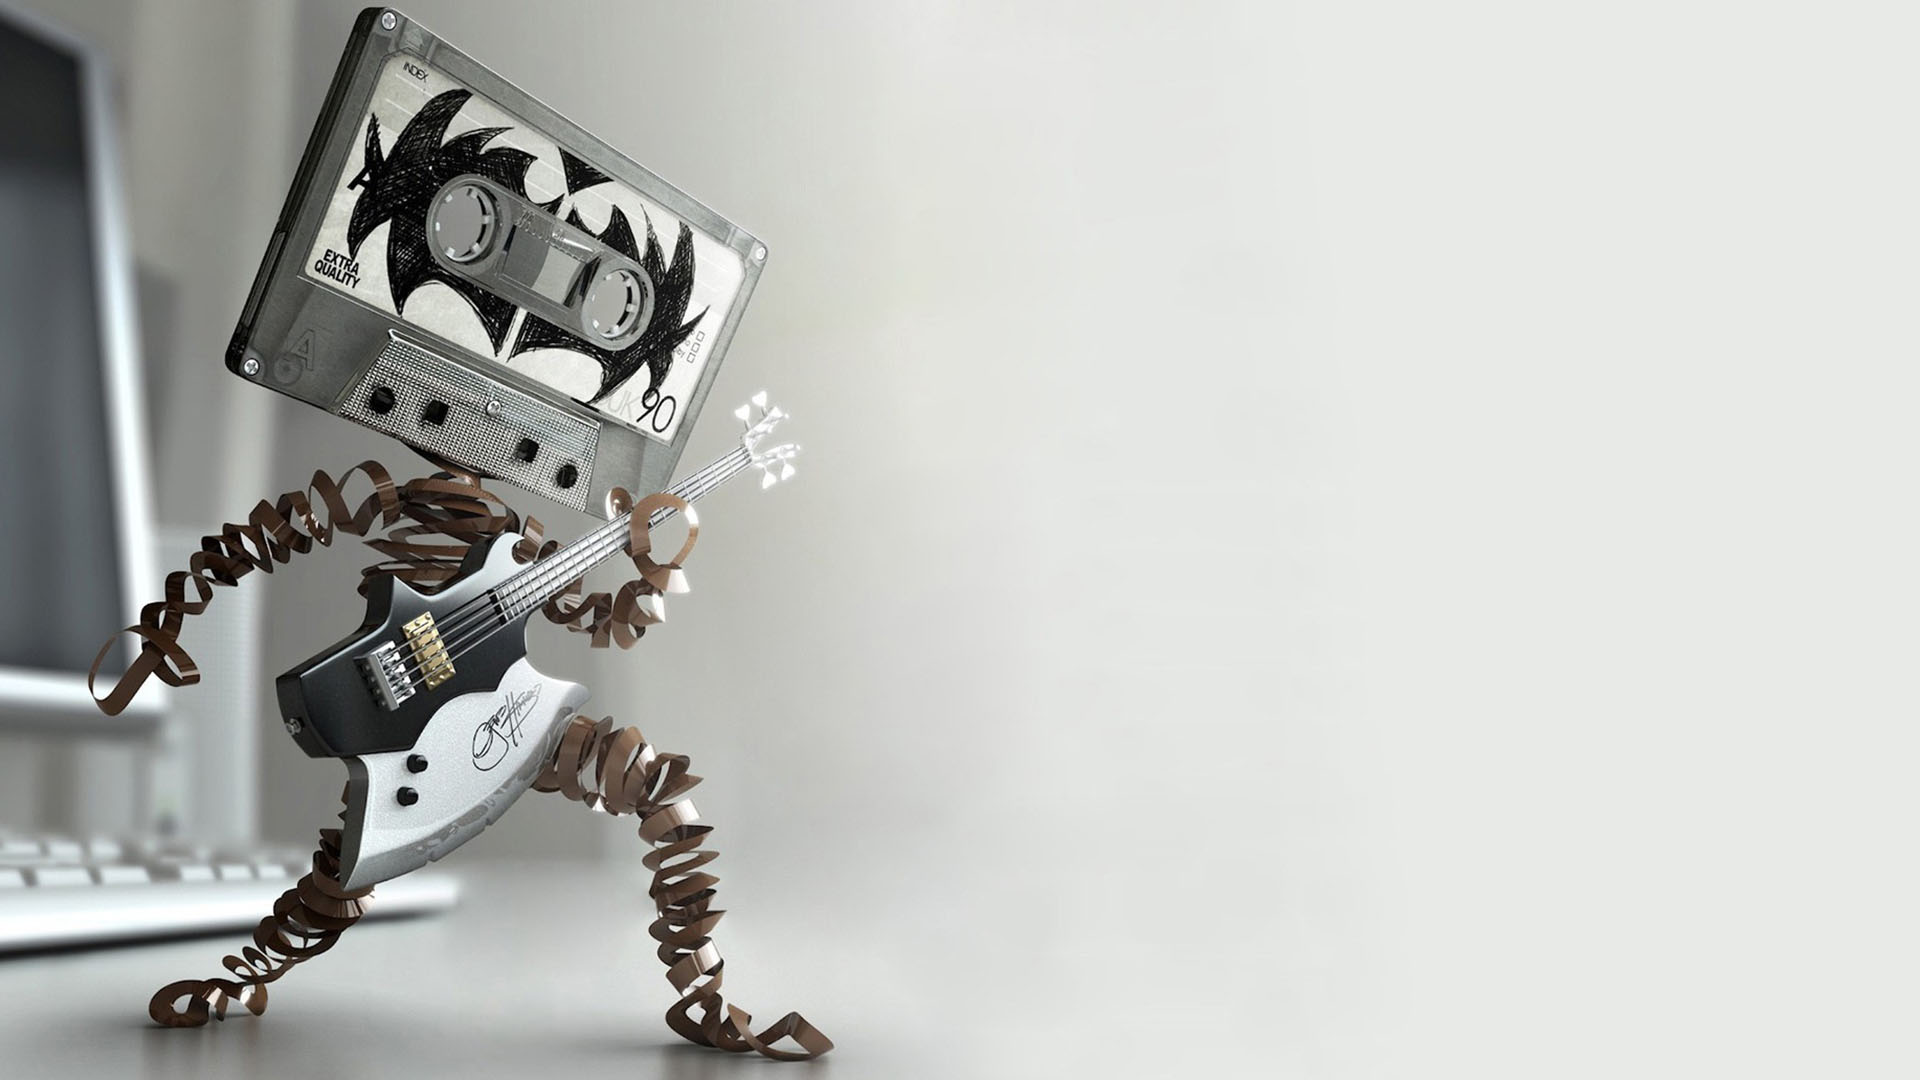 ... Wallpaper Desktop 3d Hd Music 02 ...